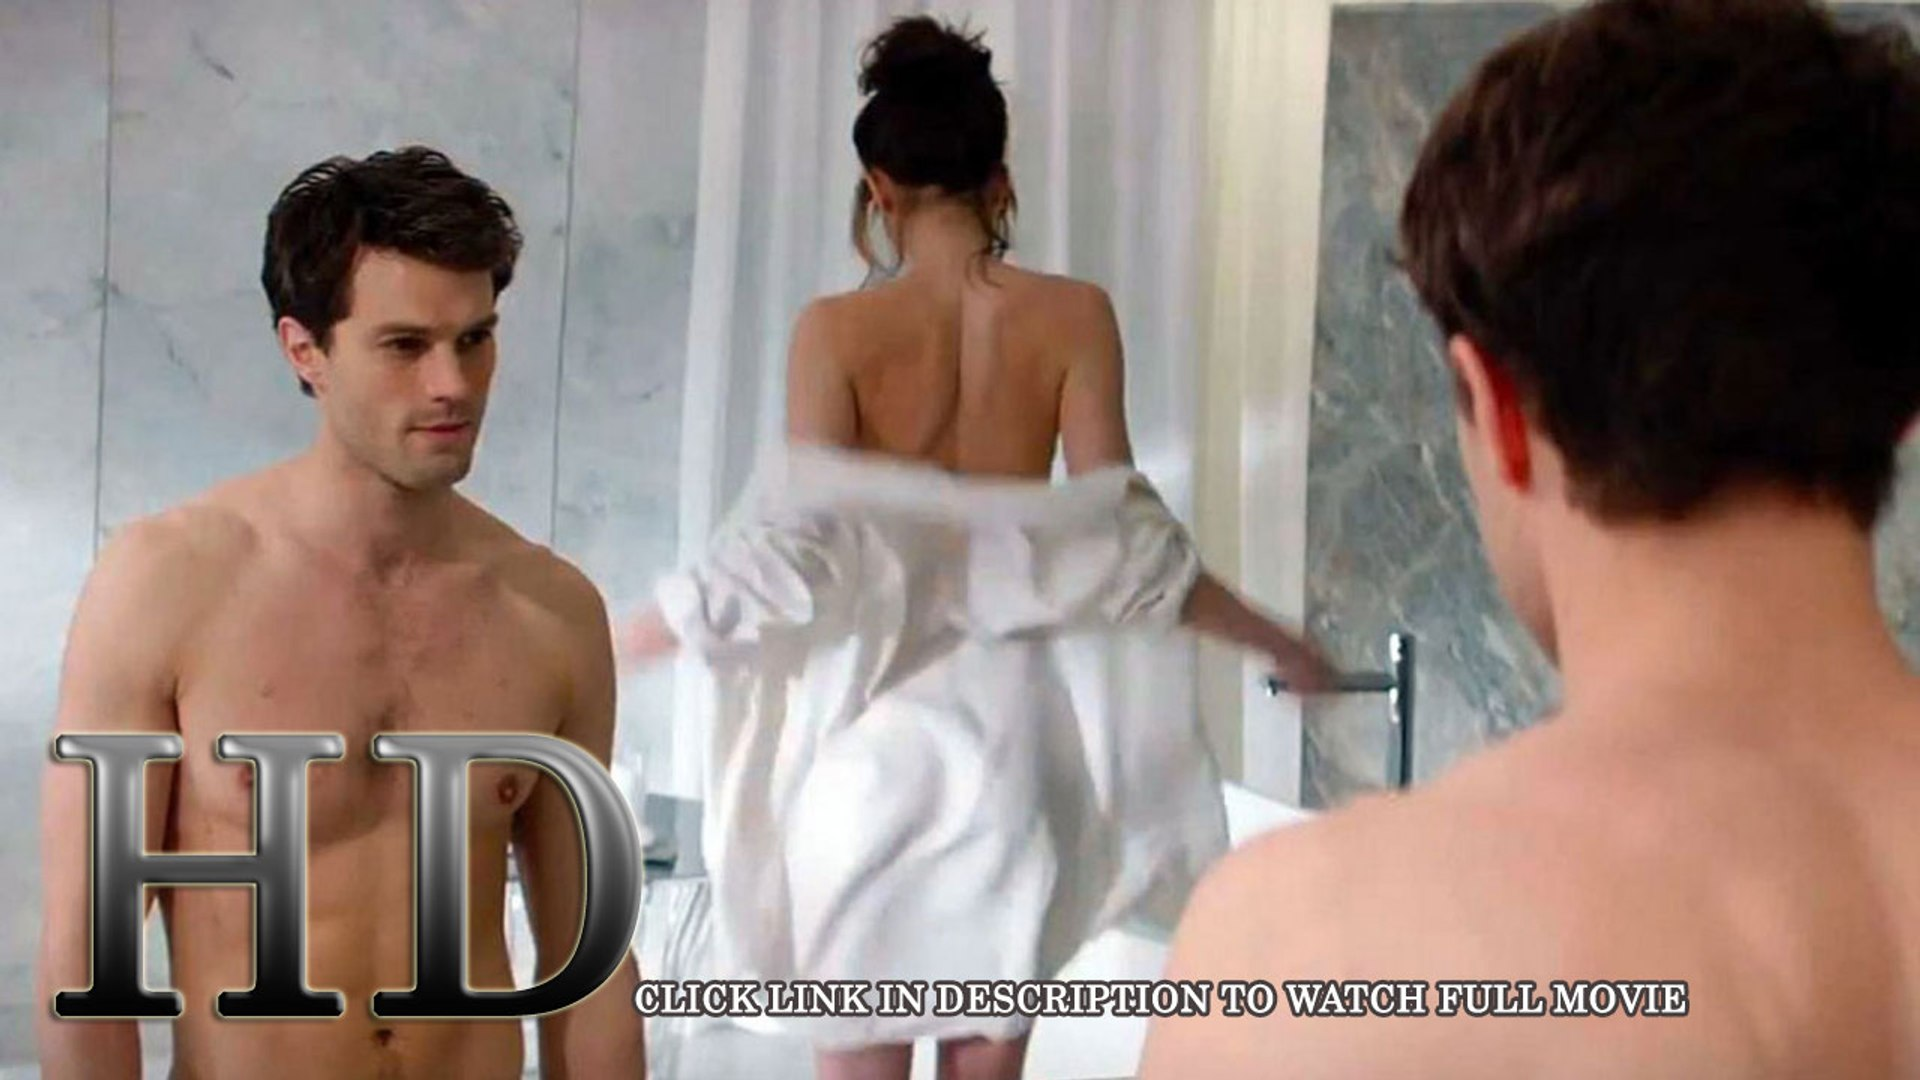 fifty shades of grey full movie watch online free putlockers